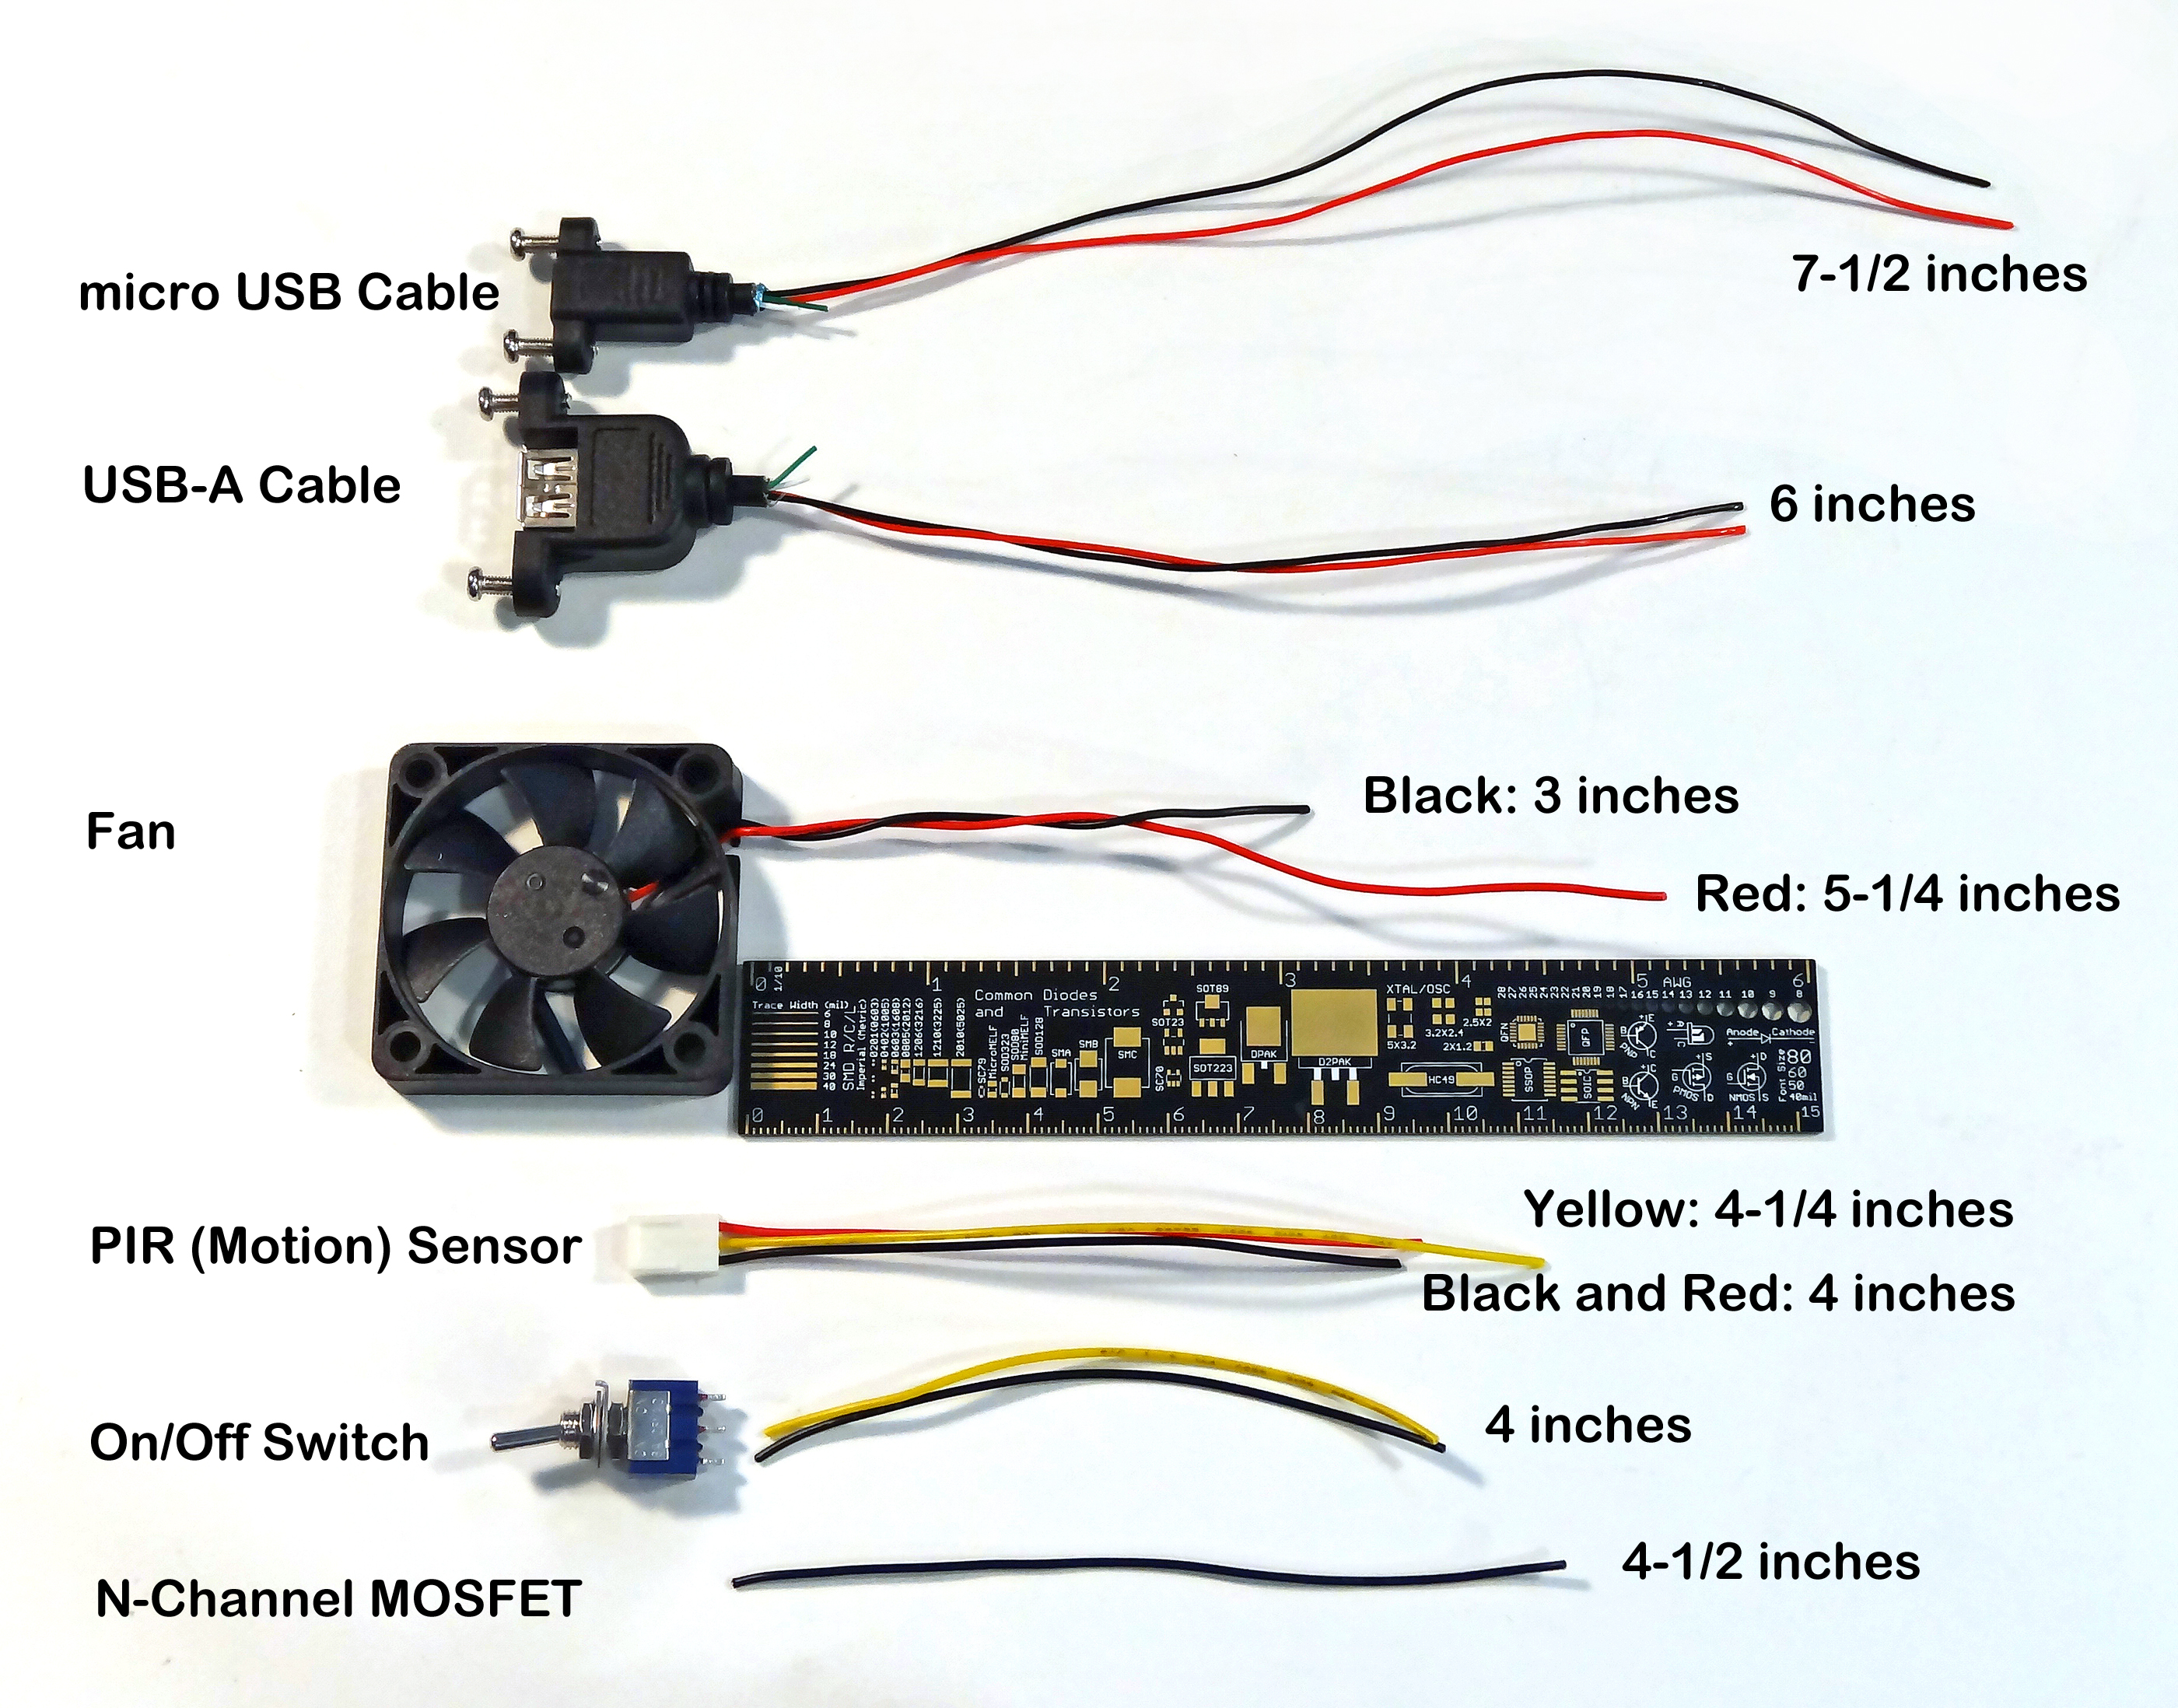 tools_wire_cable_len_annotated.jpg